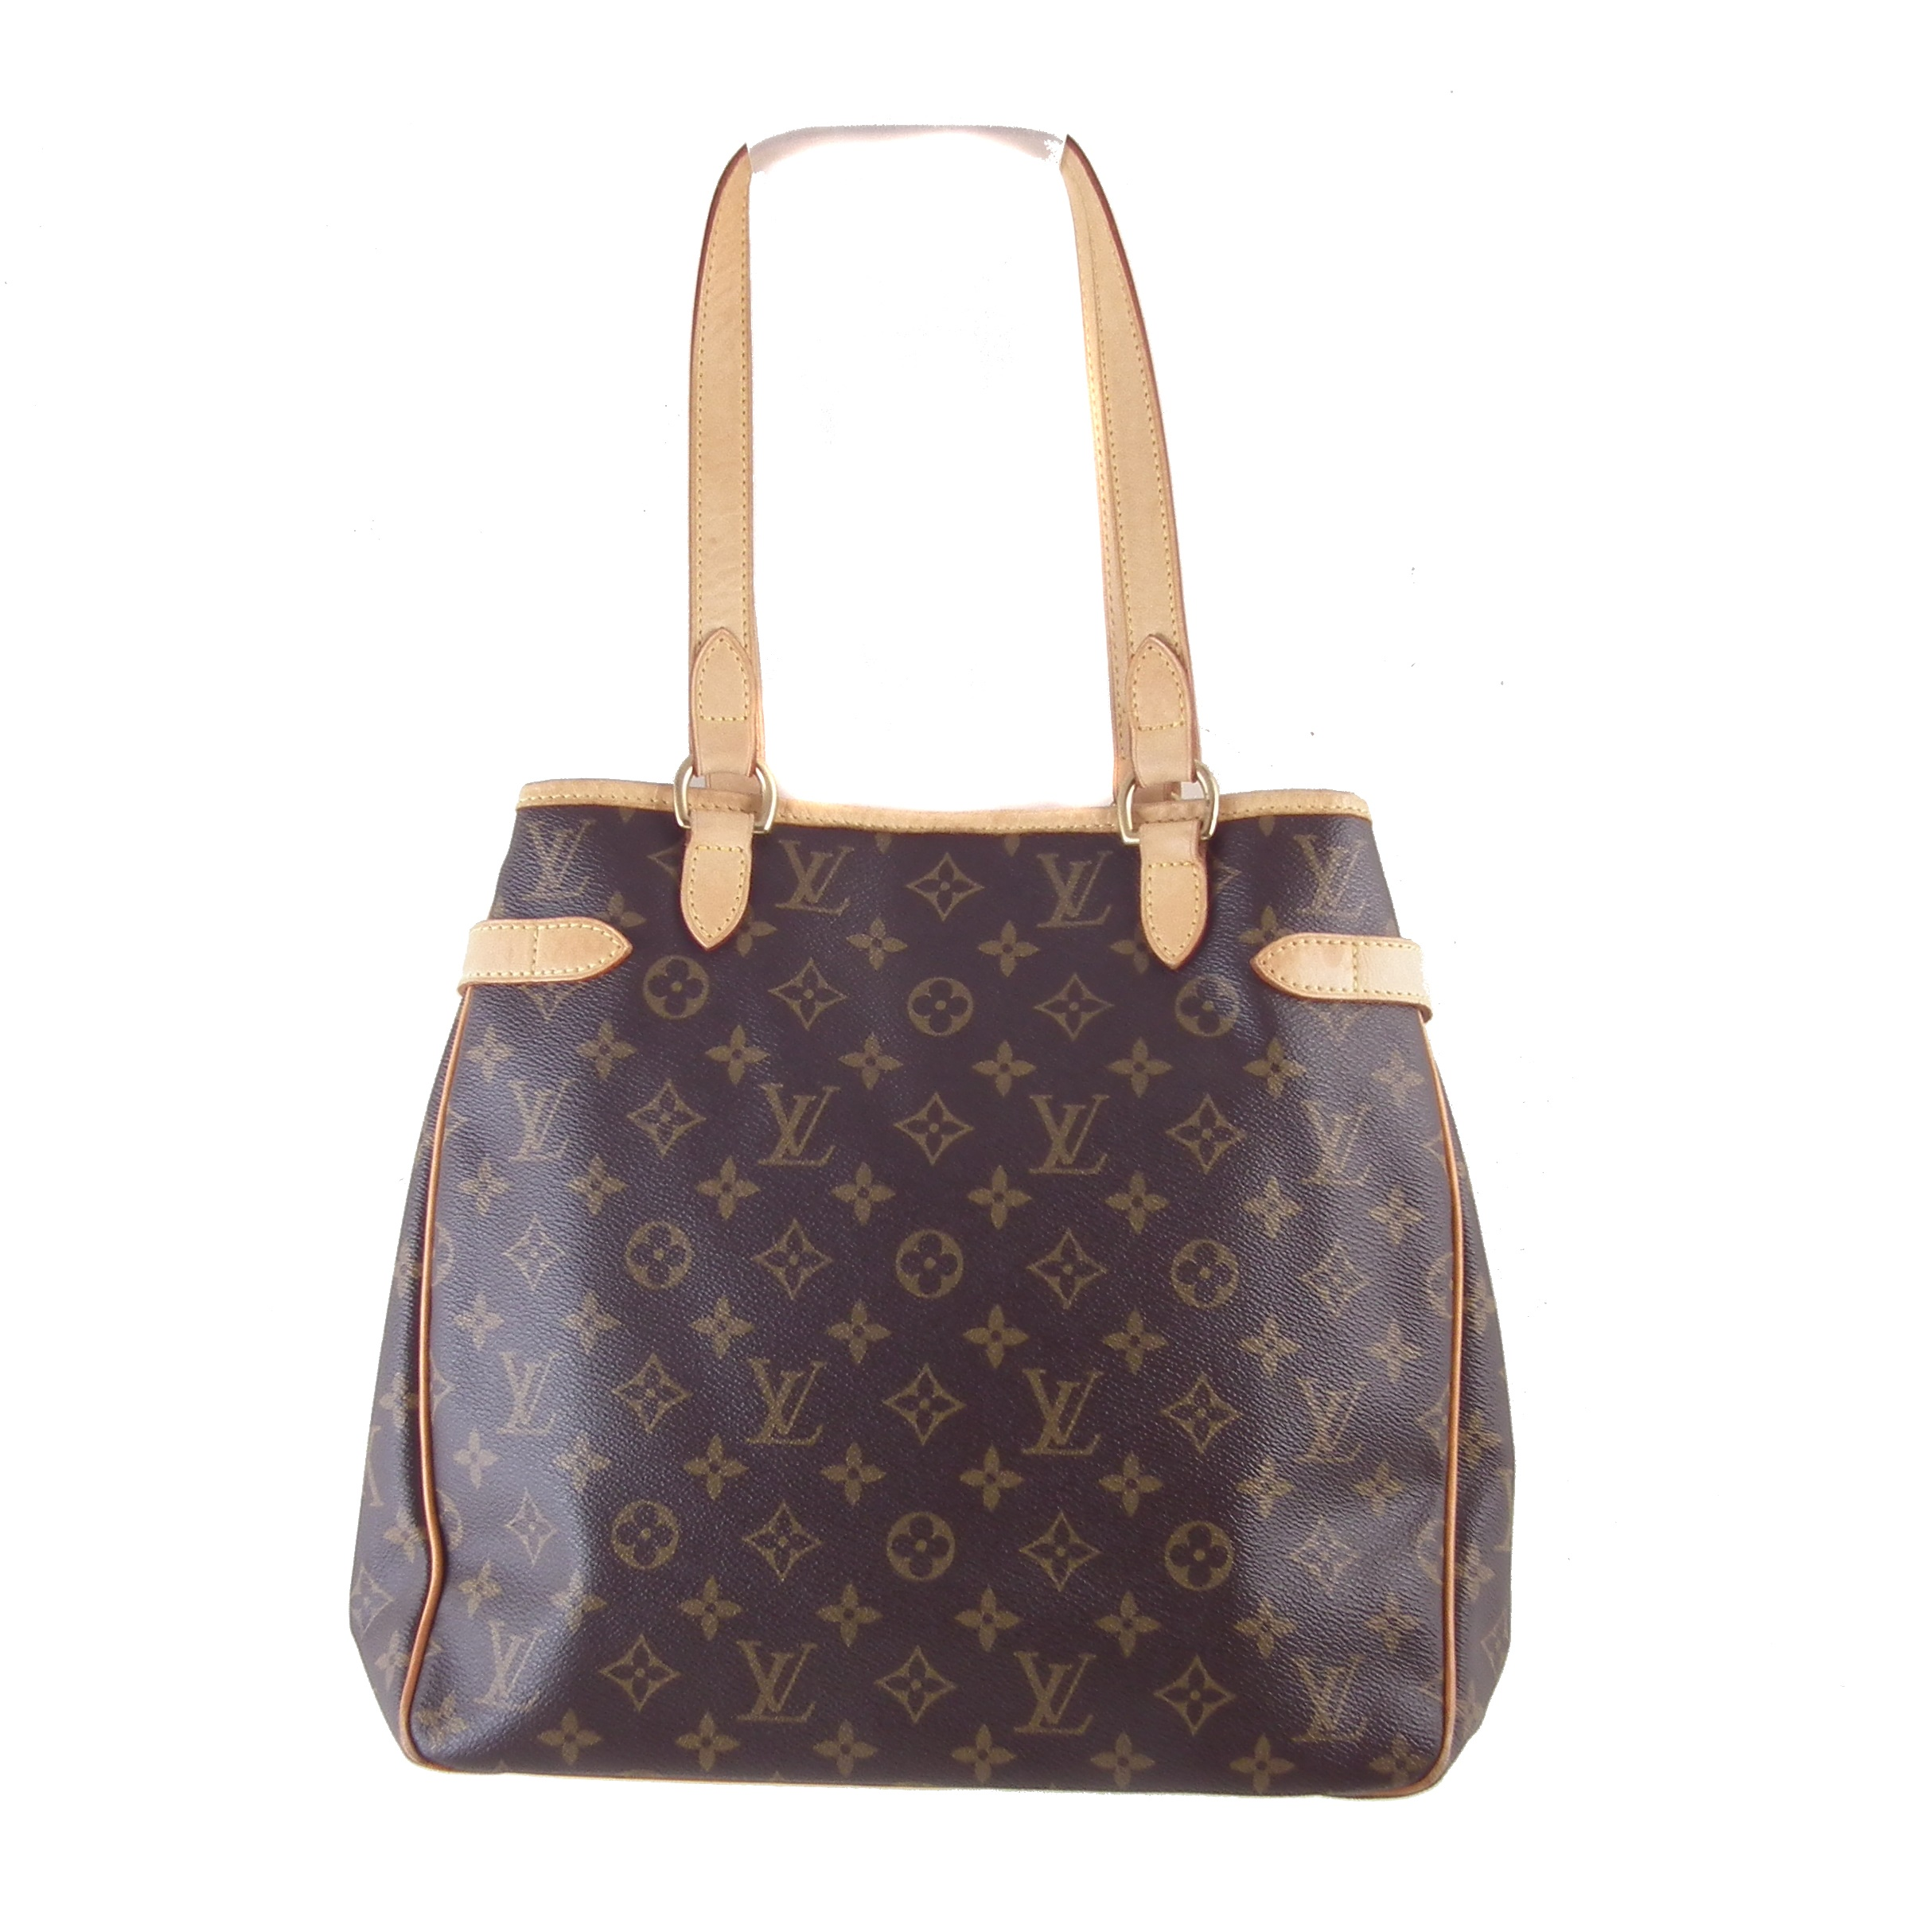 A Louis Vuitton Monogram Batignolles Vertical GM handbag,